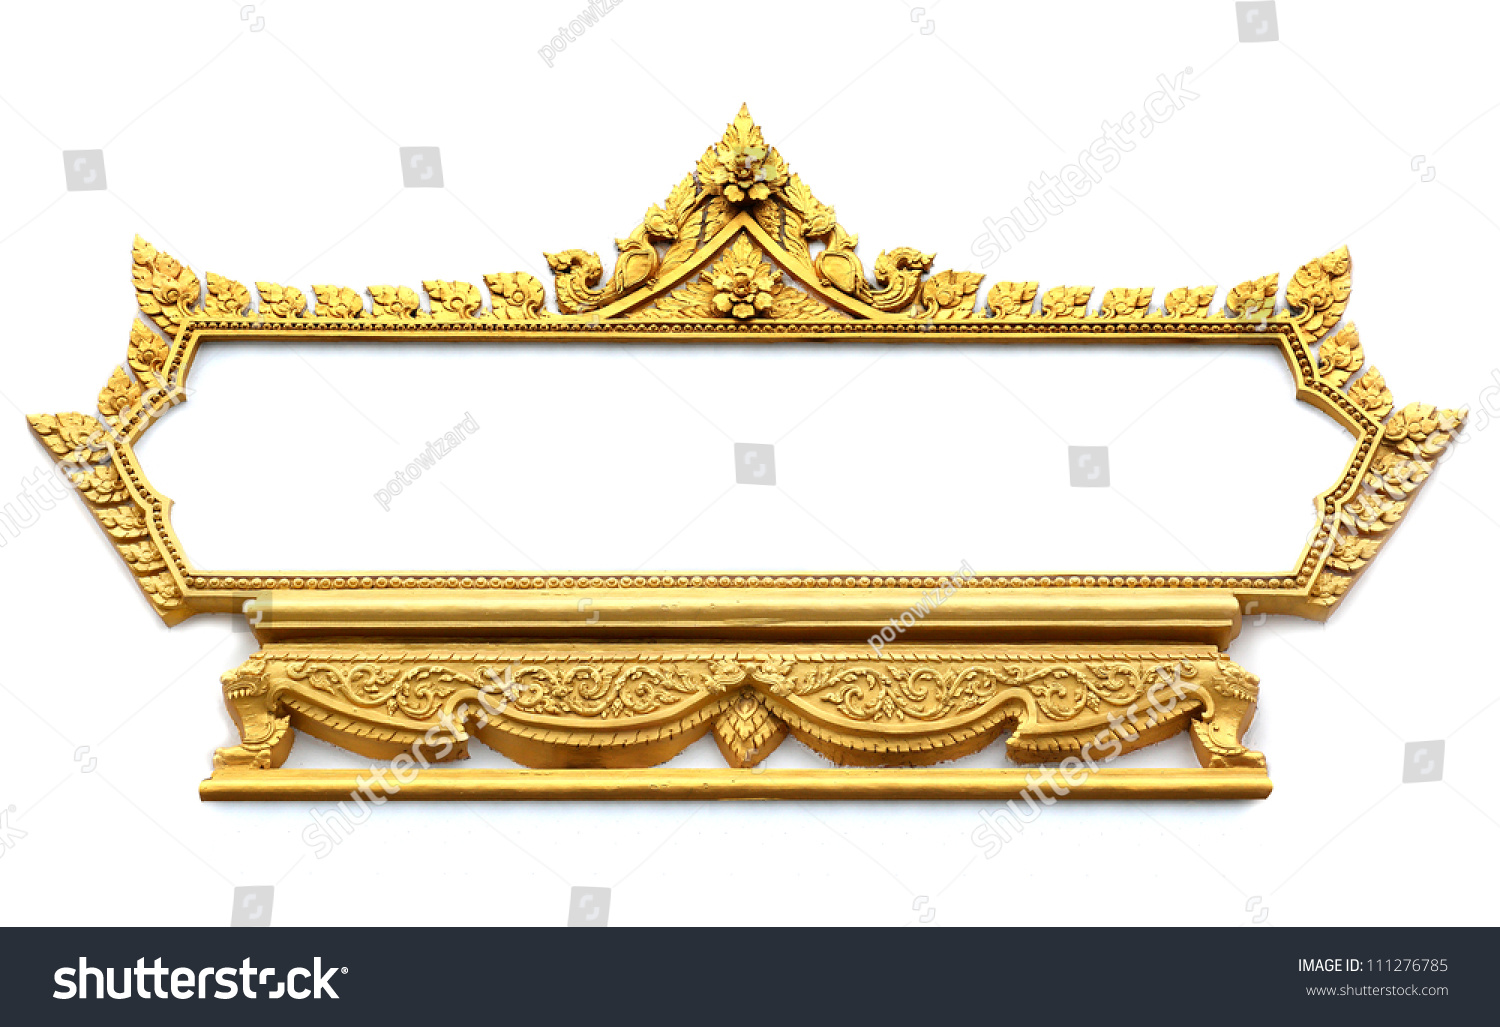 Frame Thai Art Wall Pattern Thailand Stock Photo (Royalty Free ...